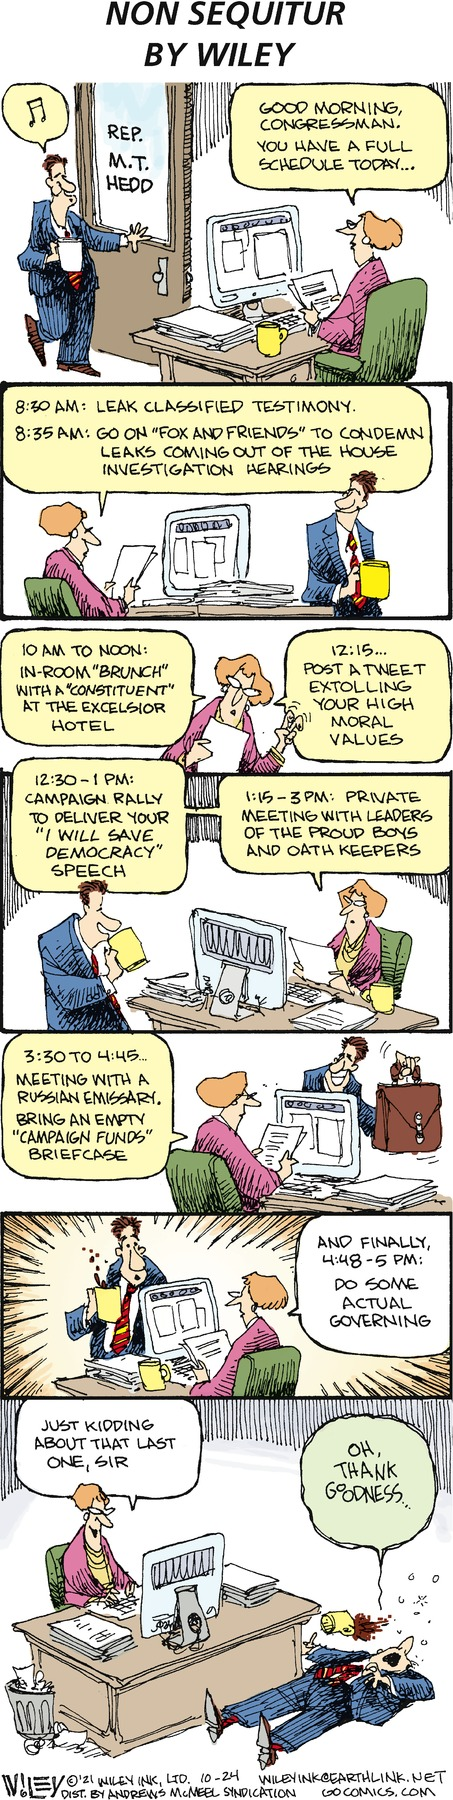 Non Sequitur by Wiley Miller on Sun, 24 Oct 2021